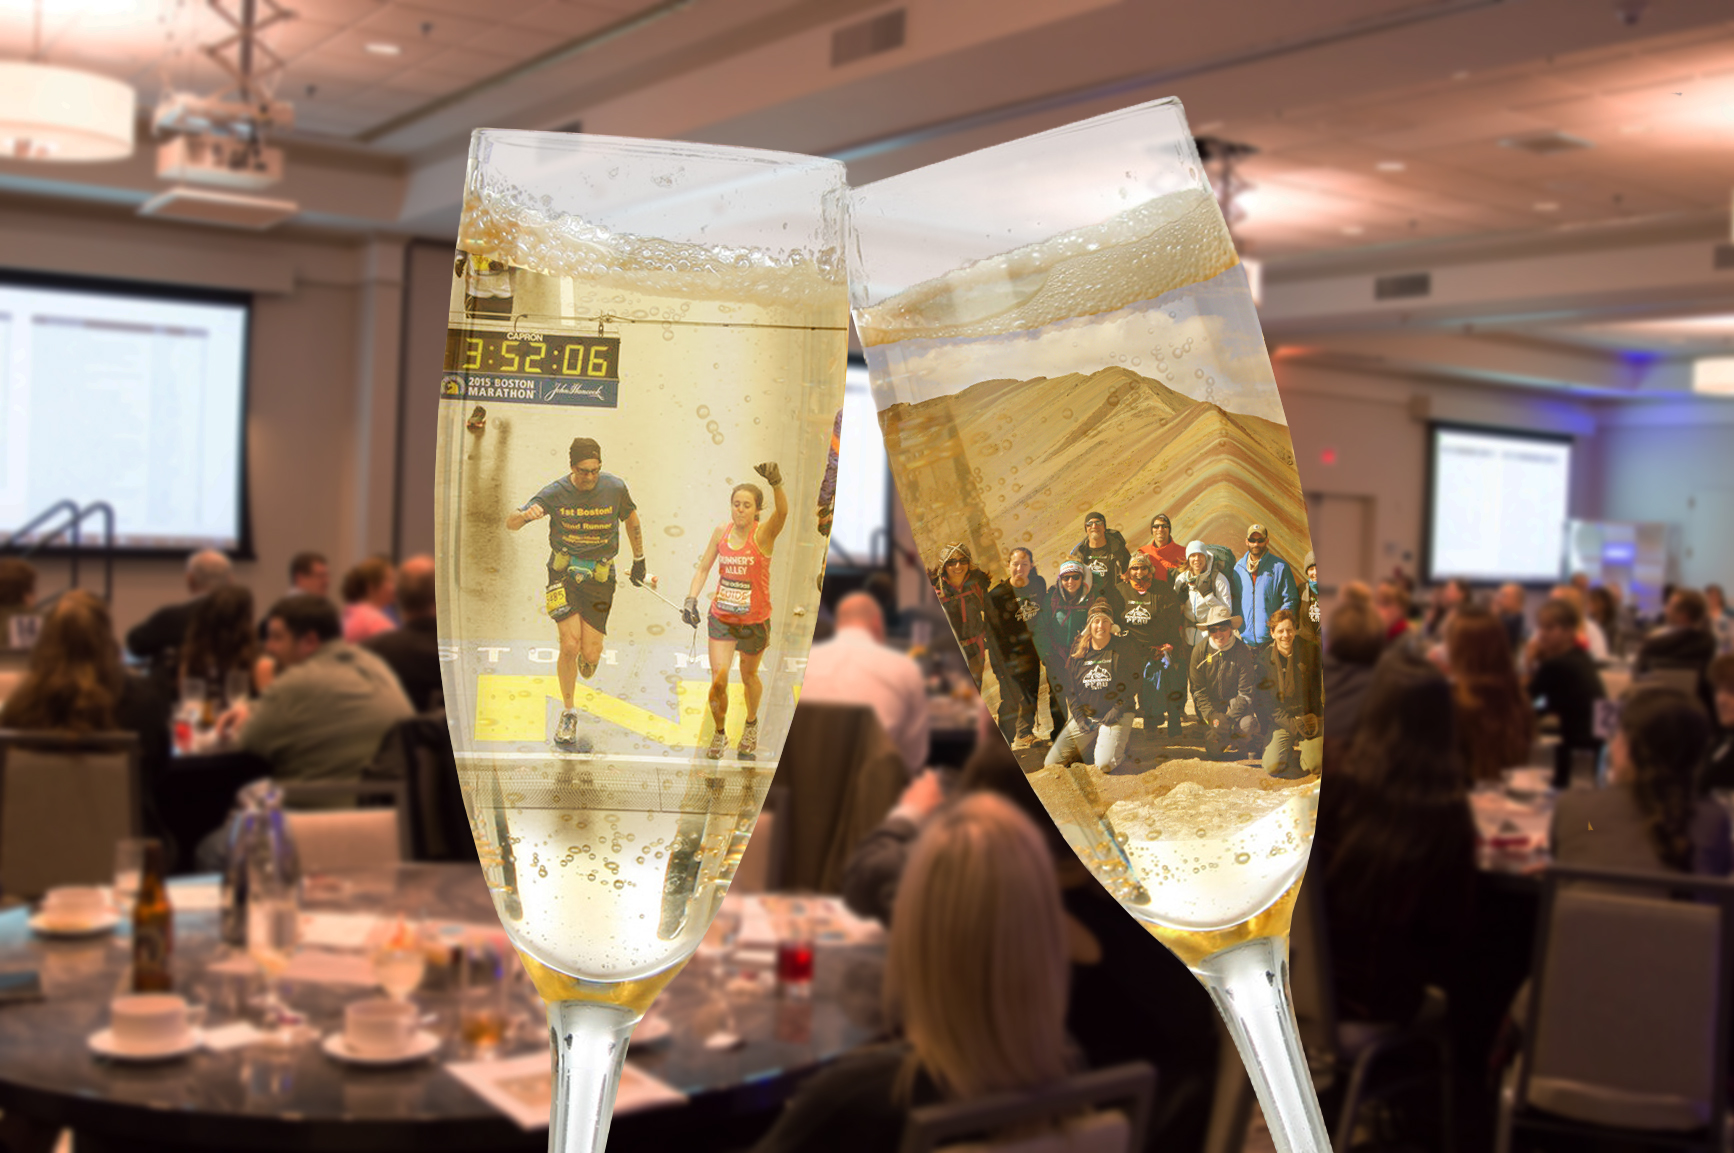 Two champagne glasses through which are visible a photo of Randy and teammate running the Boston Marathon and Randy and his team in front of Rainbow Mountain in Peru are visible.